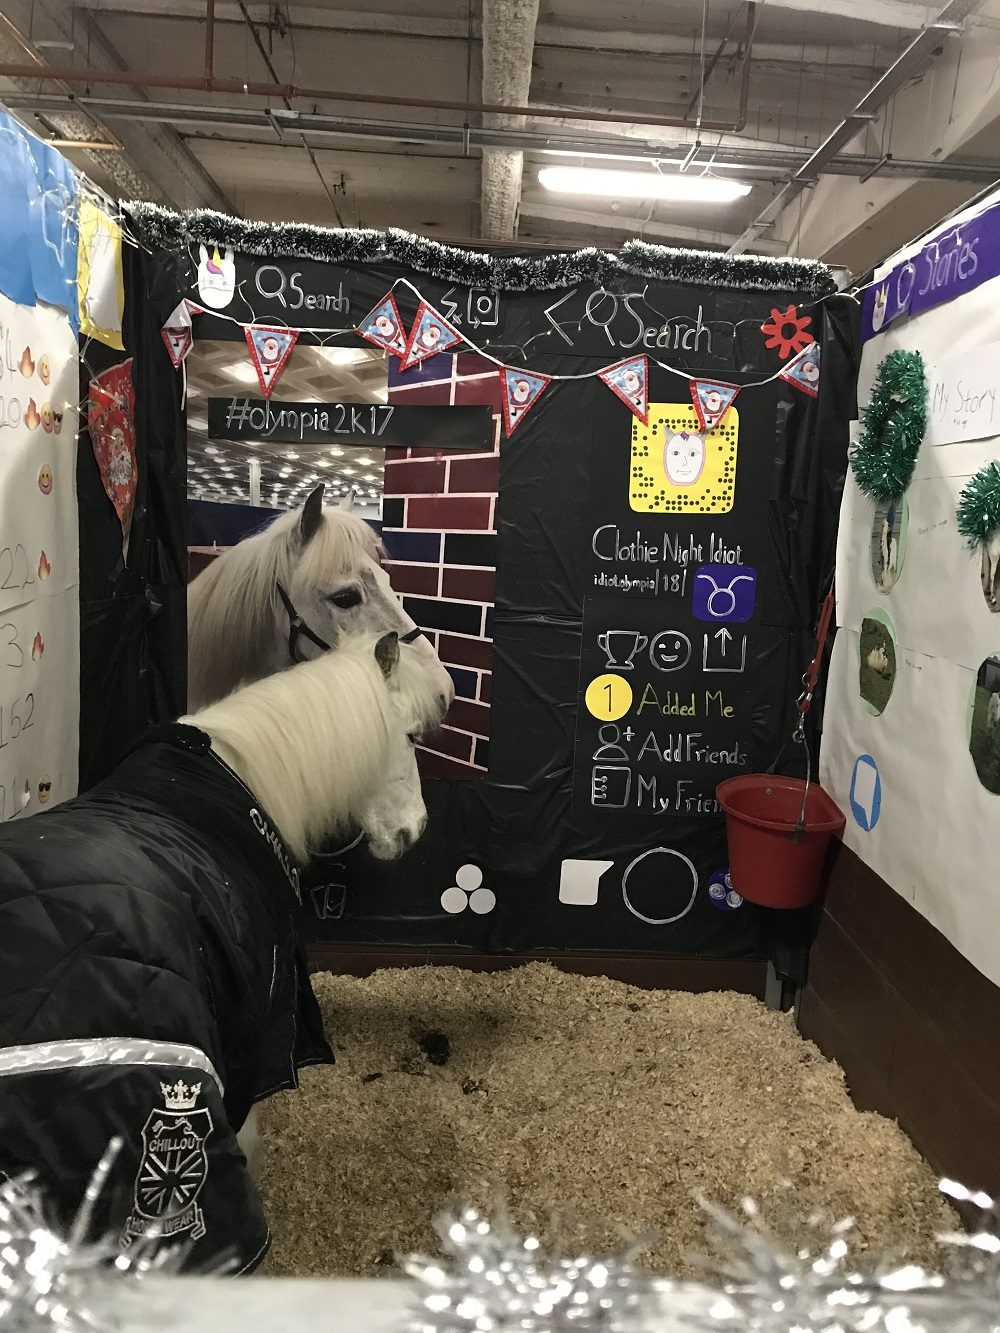 ow Shetland decorated stable